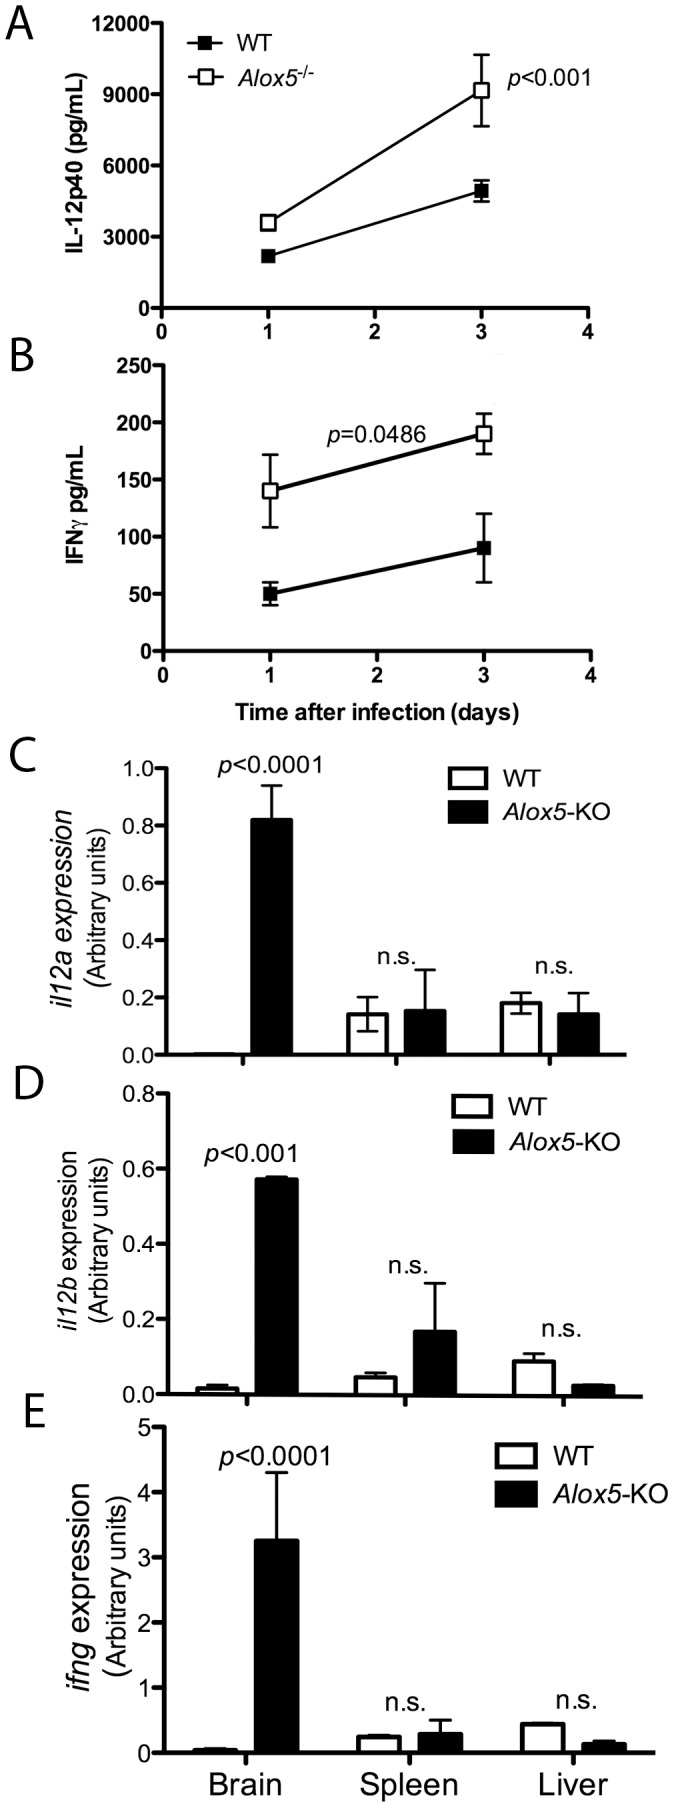 Enhanced cytokine expression during P. berghei ANKA infection in 5-LO-deficient mice. C57Bl/6 WT and Alox5 −/− ( n = 4 mice/group) mice were infected i.p. with P. berghei ANKA strain. At 1 and 3 days after infection, animals were bled and serum levels of IL-12p40 ( A ) and IFN- γ ( B ) were determined by ELISA. Five days after infection, mice were sacrificed and brains, livers and spleens harvested. Tissues were homogenized, total RNA extracted and reverse transcripted for real-time RT-PCR determination of il12a ( C ), il12b ( D ) and ifng ( E ) expression. Data shown are representative of one out of three independent experiments performed. Statistical differences were determined using Mann Whitney test.